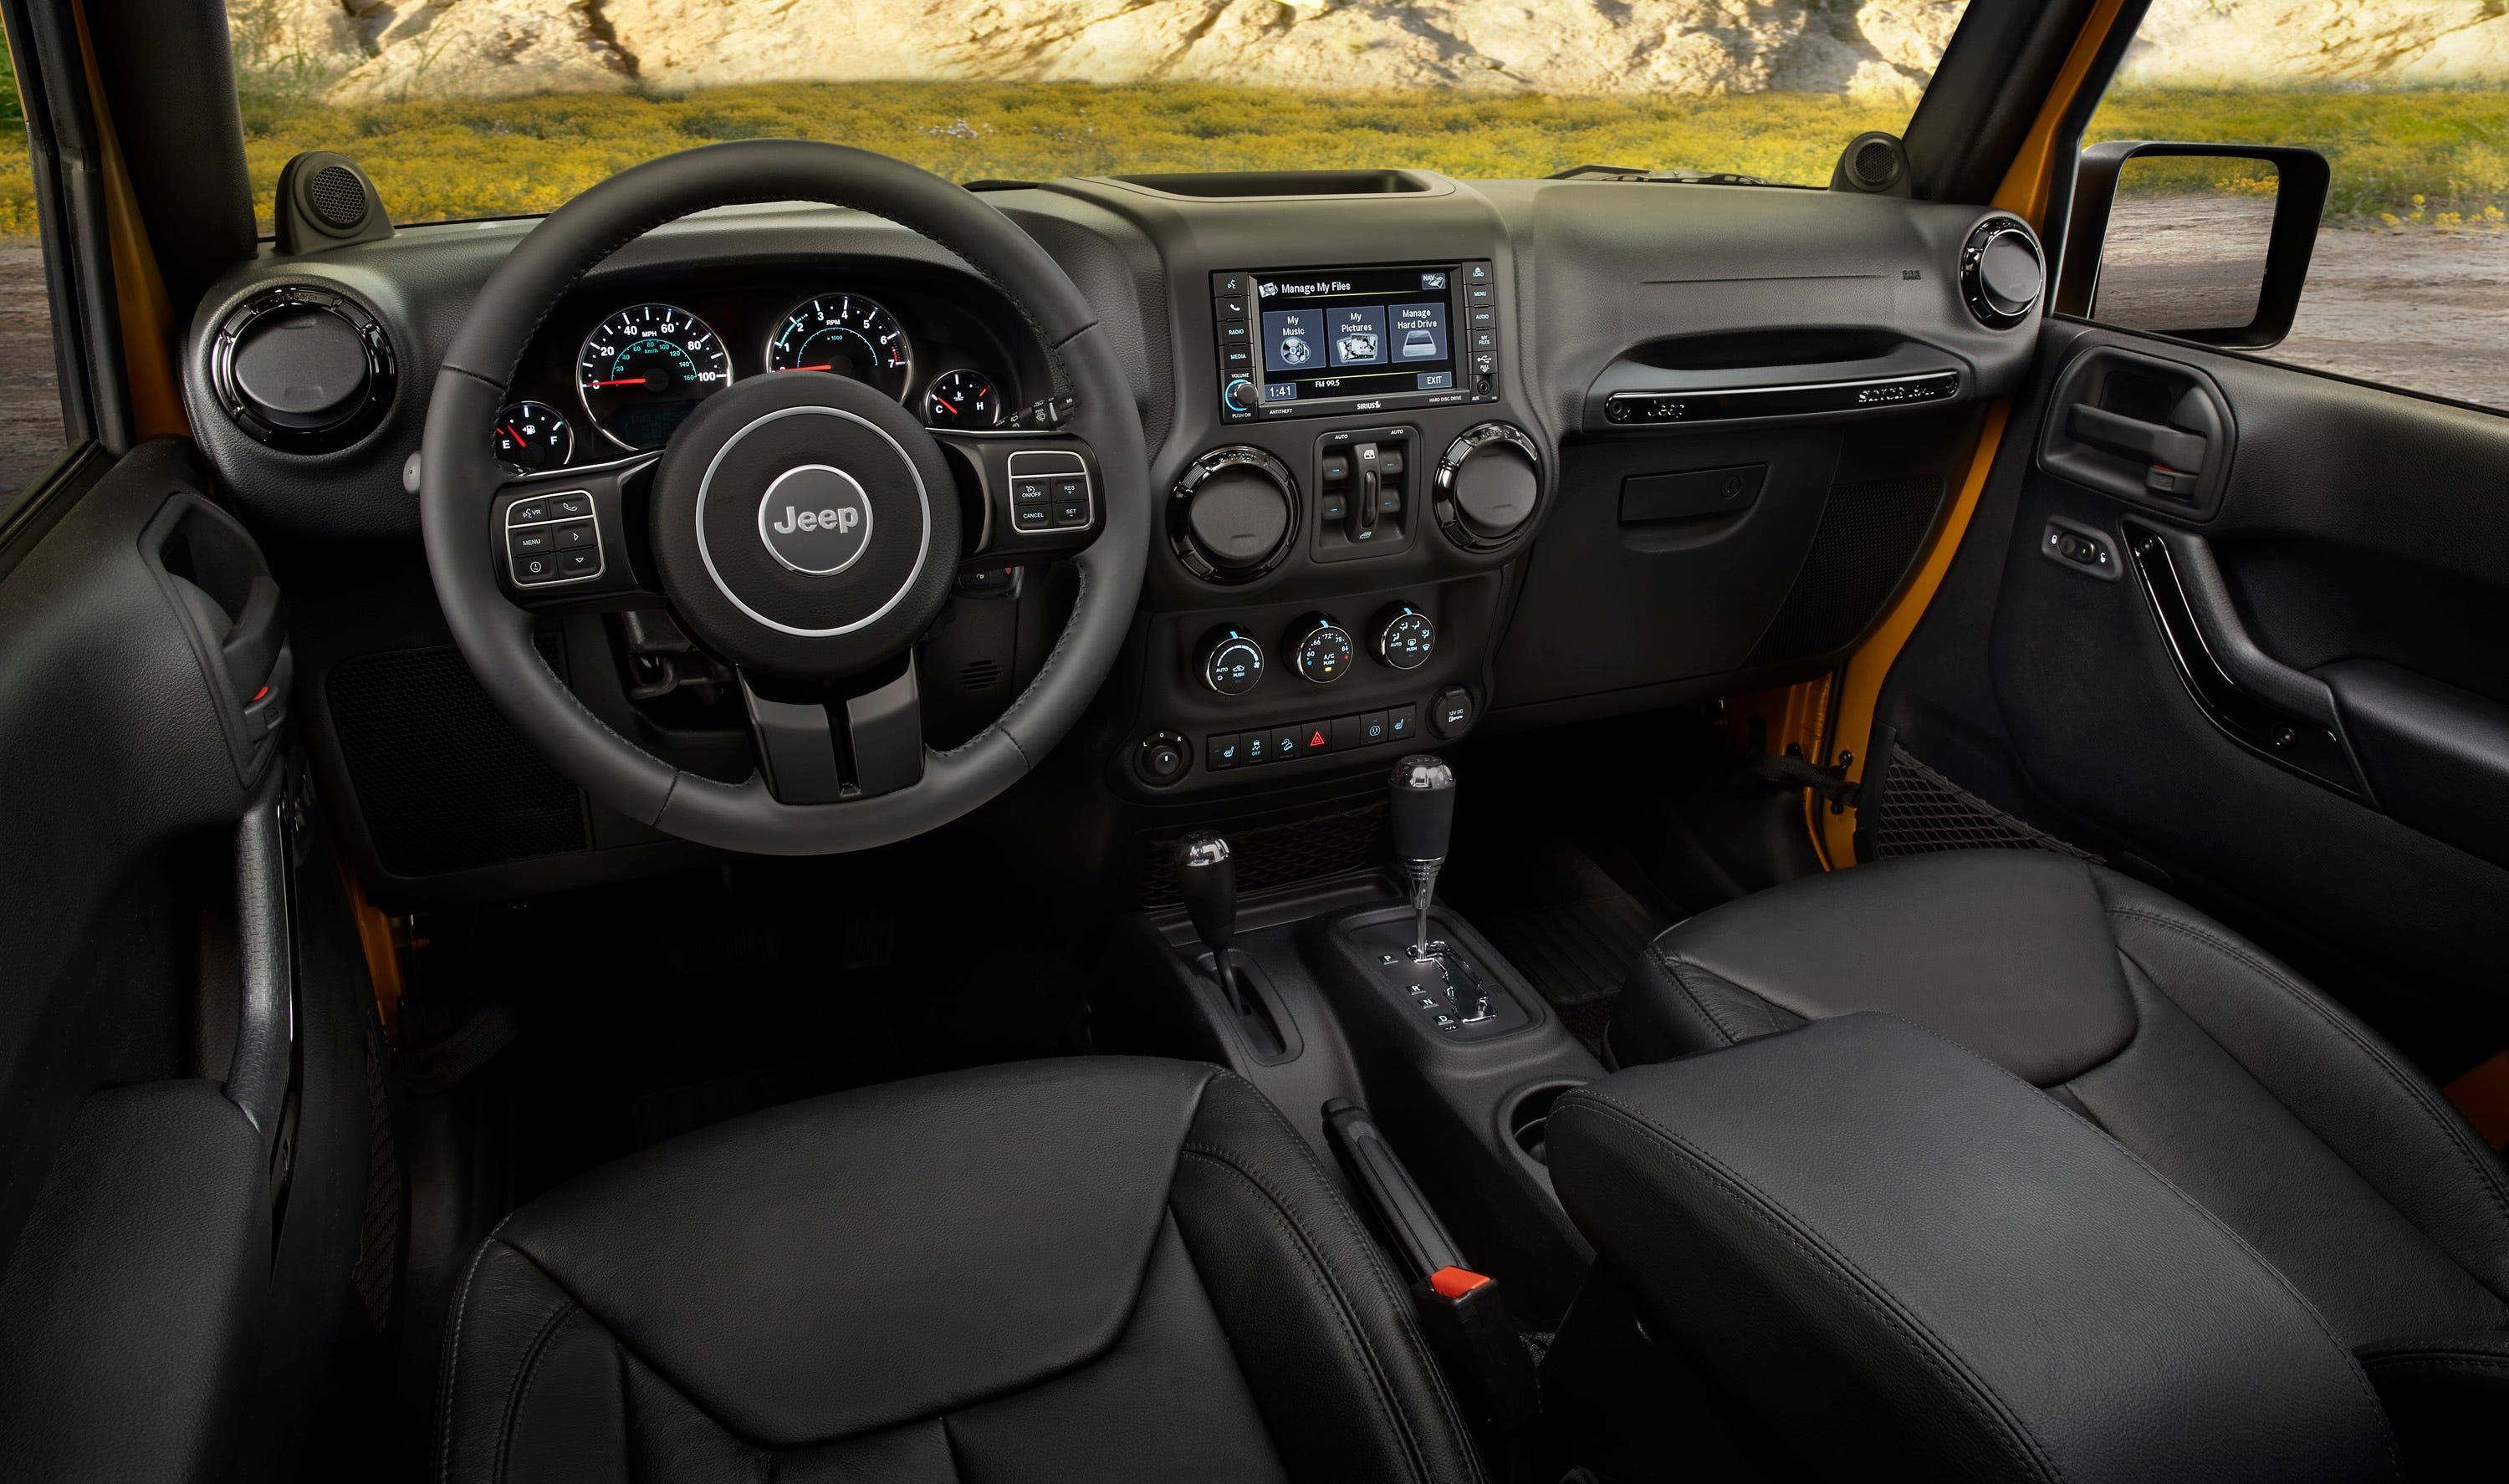 2014 Jeep Wrangler Unlimited Interior